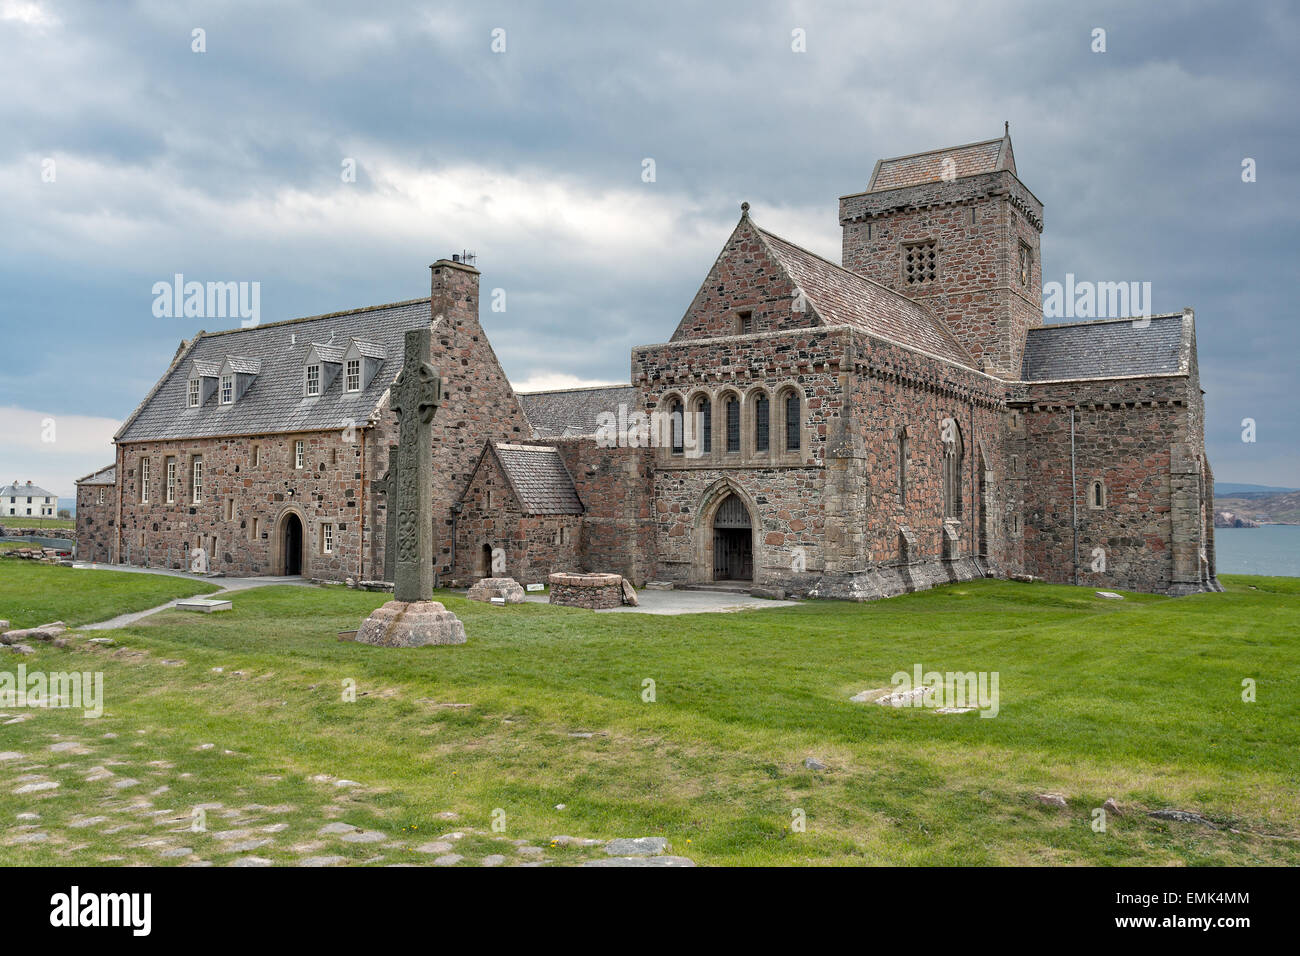 Iona abbey, Inner Hebrides, Scotland - Stock Image